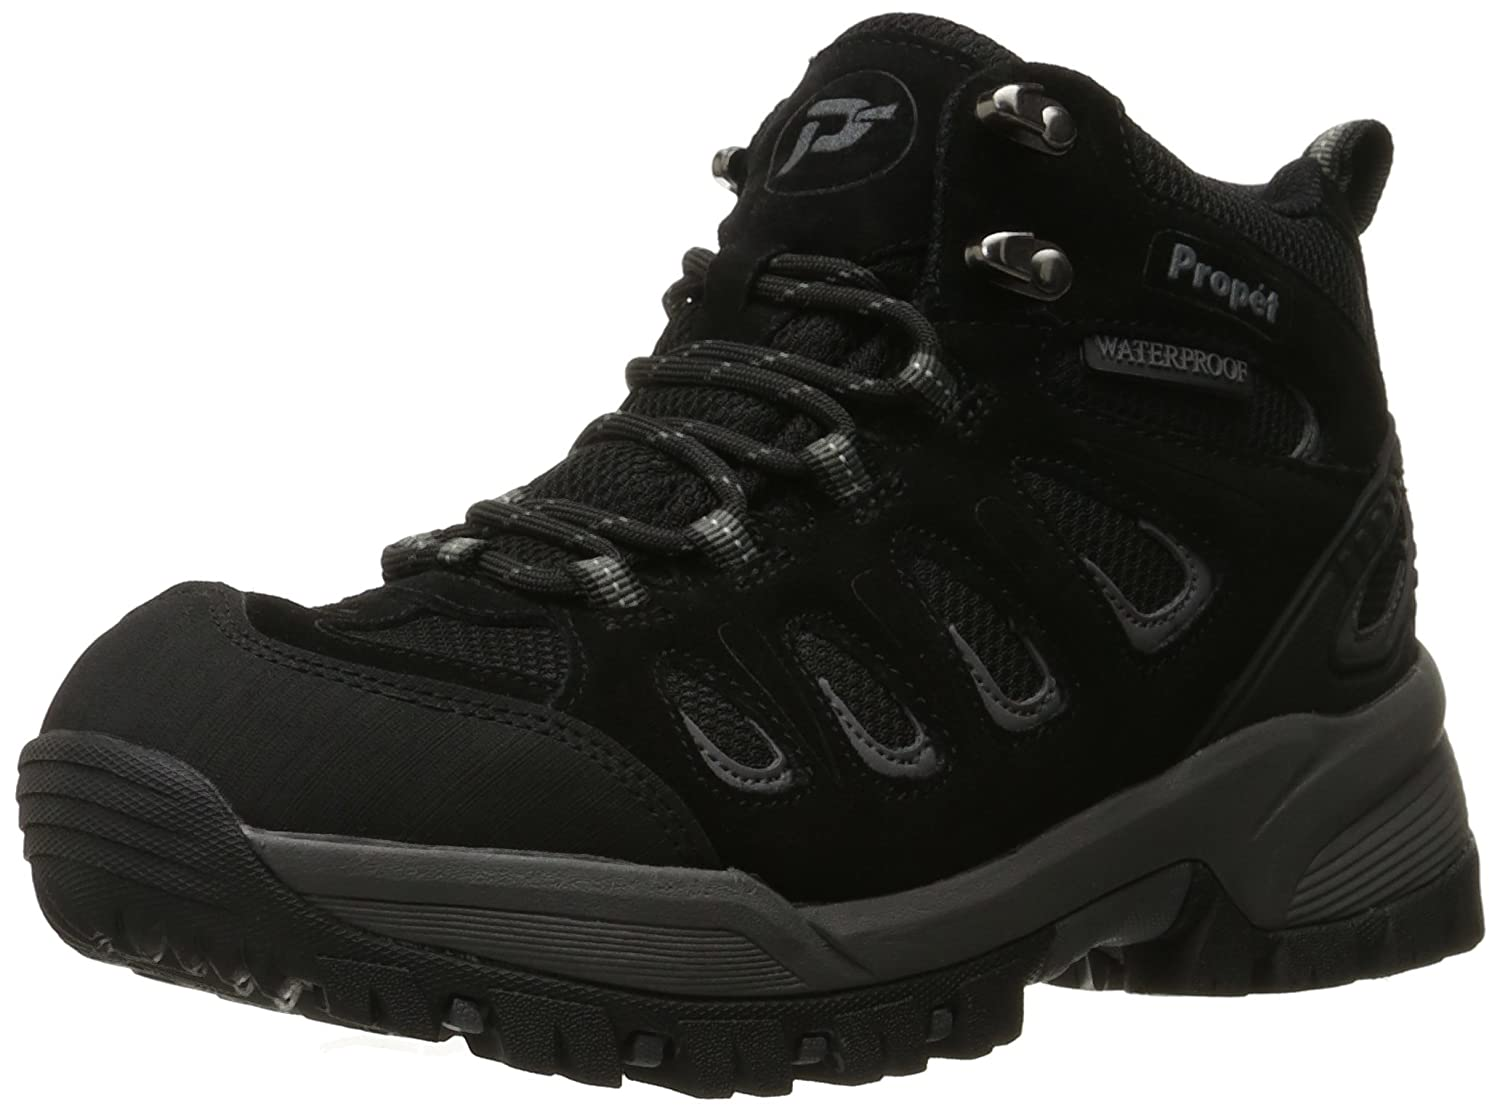 Propet Women's Ridgewalker Boot B01CYSITQ2 9.5 B(M) US|Black